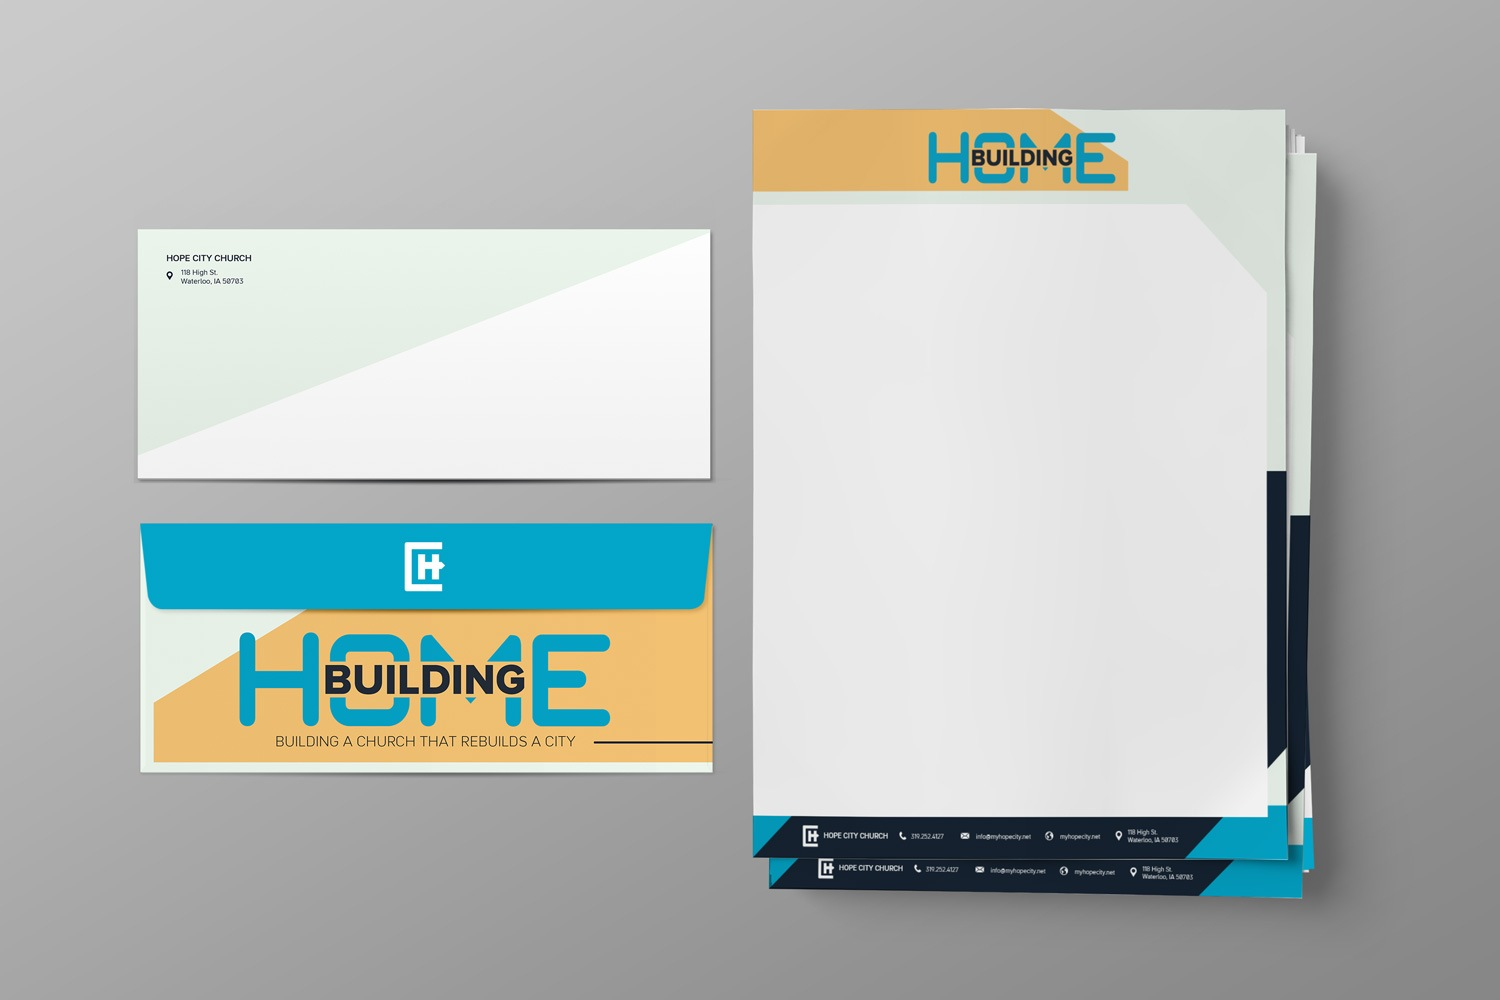 Letterhead and envelope set for church fundraising and capital campaign stewardship, materials examples by Abstract Union